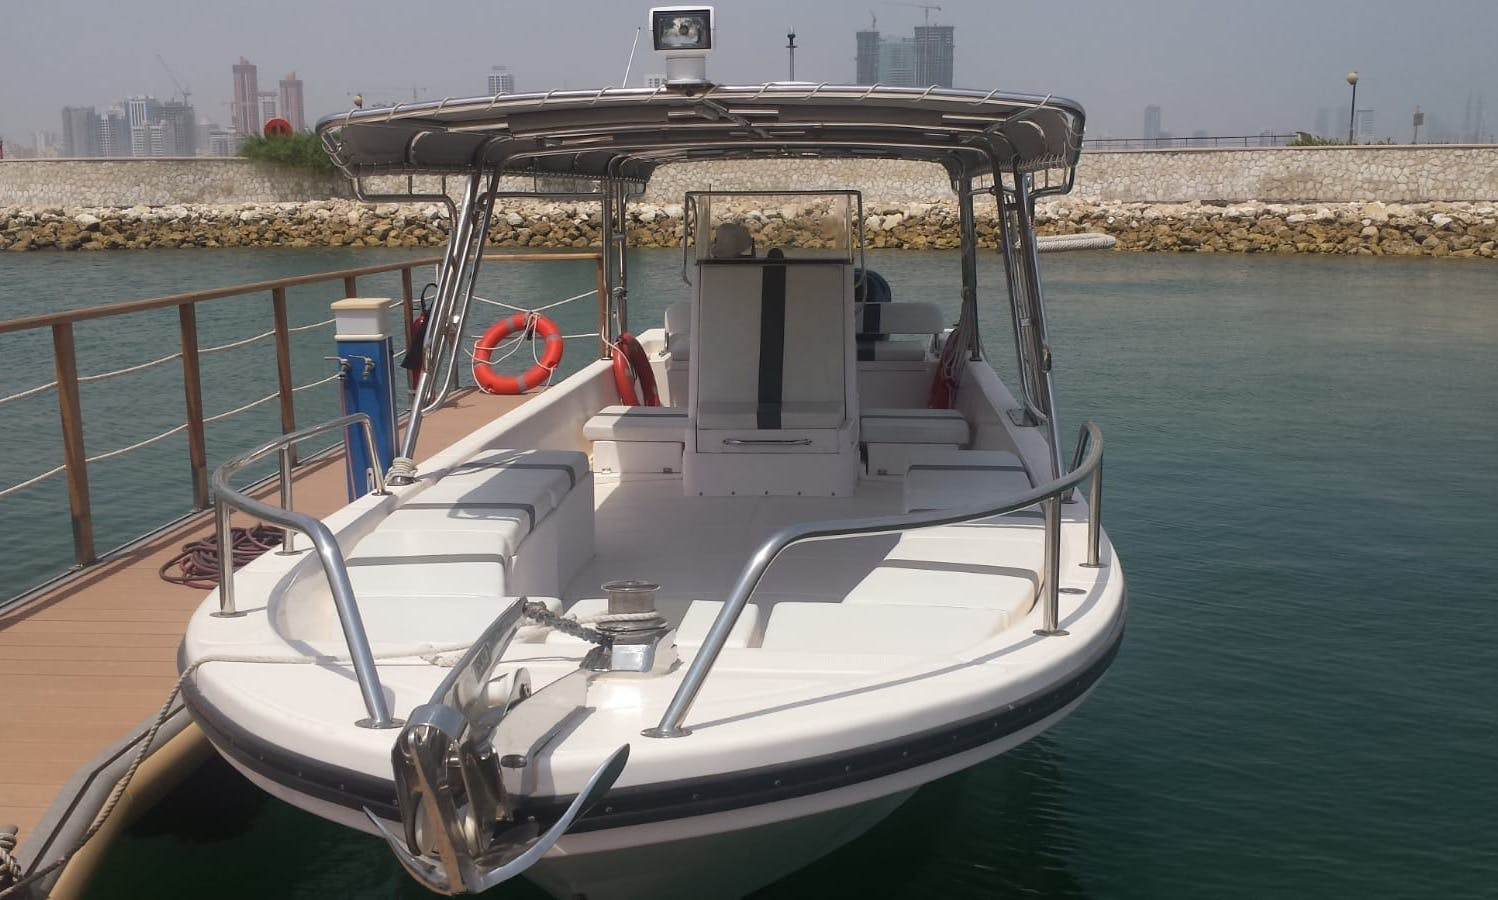 Explore Manama, Bahrain with family and friends aboard this center console